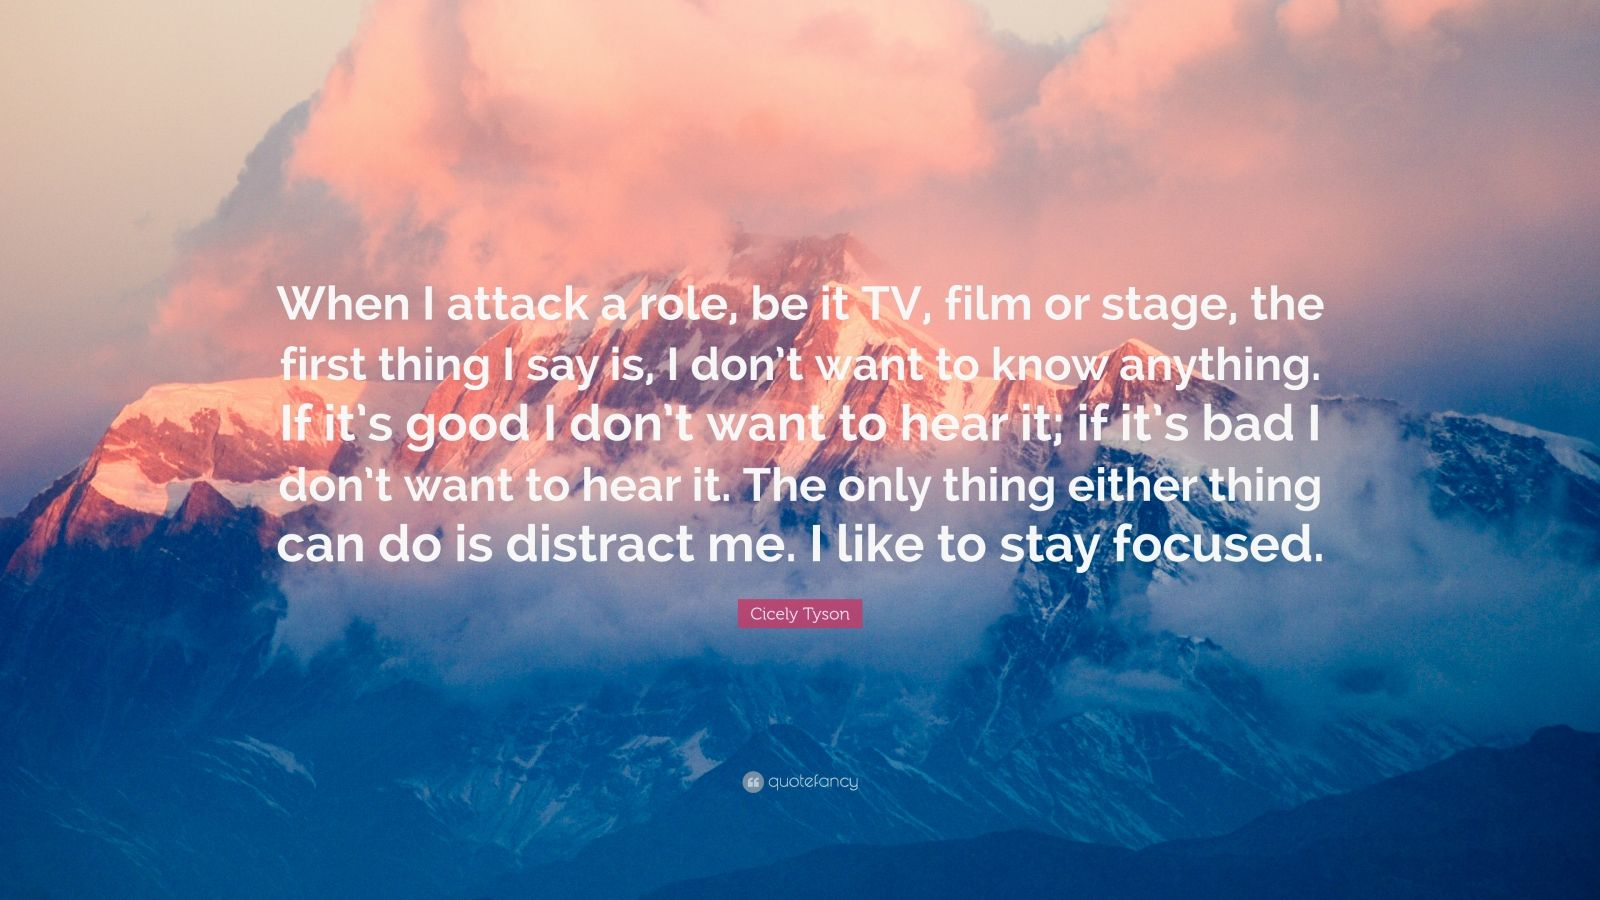 "Cicely Tyson Quote: ""When I attack a role, be it TV, film or stage, the first thing I say is, I don't want to know anything. If it's good I don't want to hear it; if it's bad I don't want to hear it. The only thing either thing can do is distract me. I like to stay focused."""